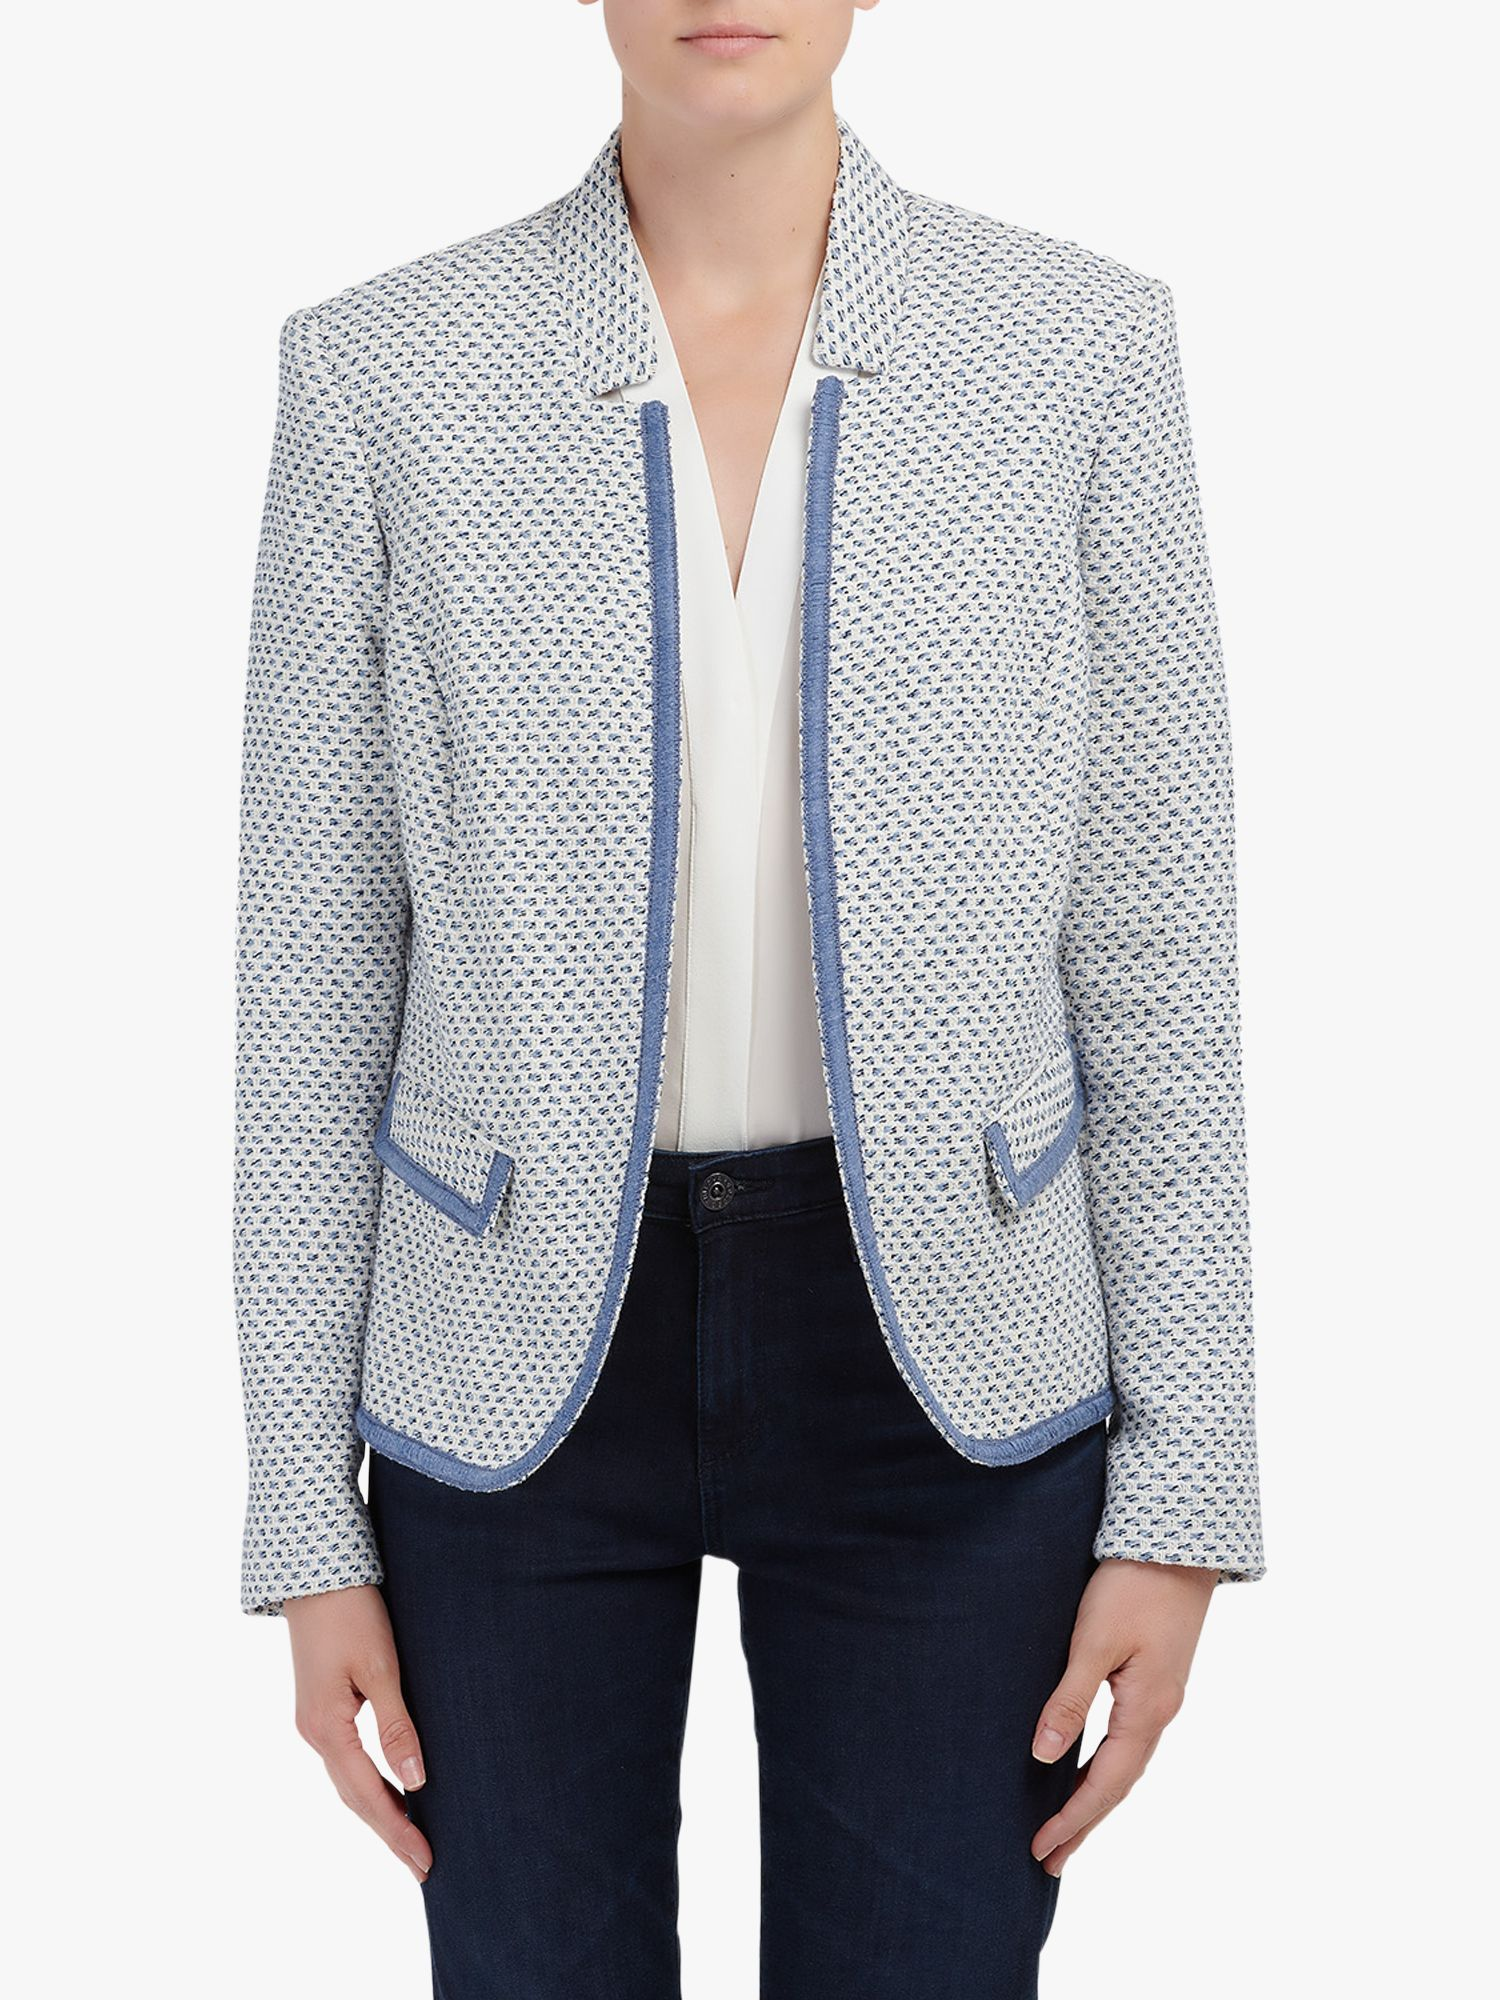 Helene For Denim Wardrobe Helene For Denim Wardrobe Amelia Notch Collar Jacket, Blue/Cream